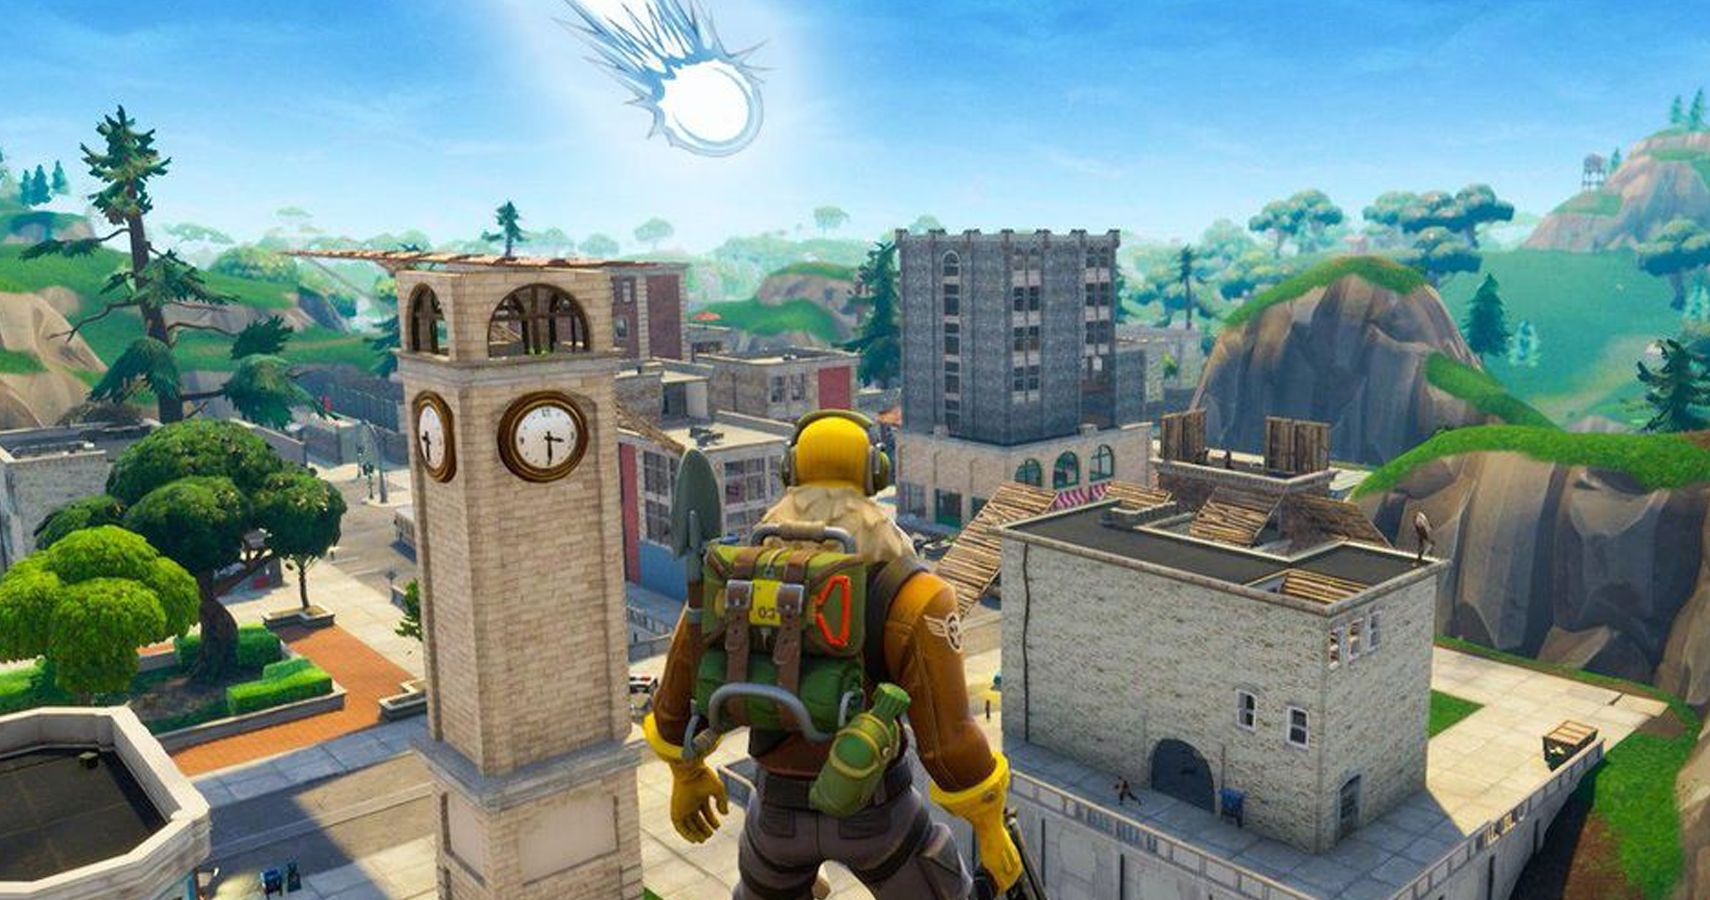 - ice cream parlor fortnite forbes